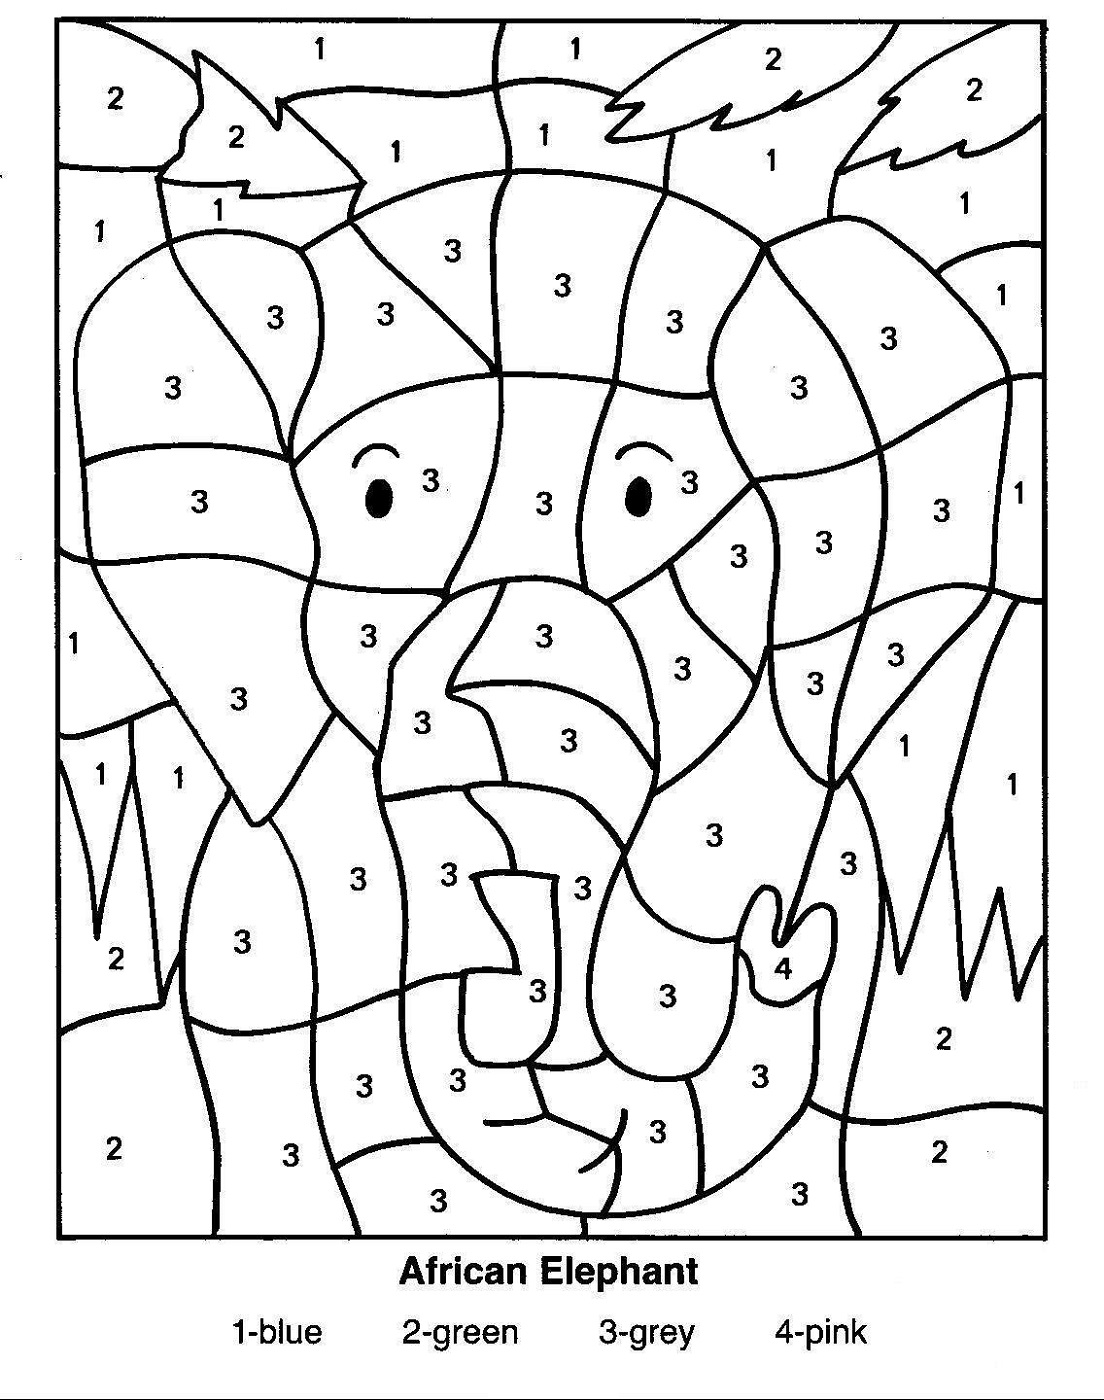 coloring sheets color by number free printable color by number coloring pages best by sheets number color coloring